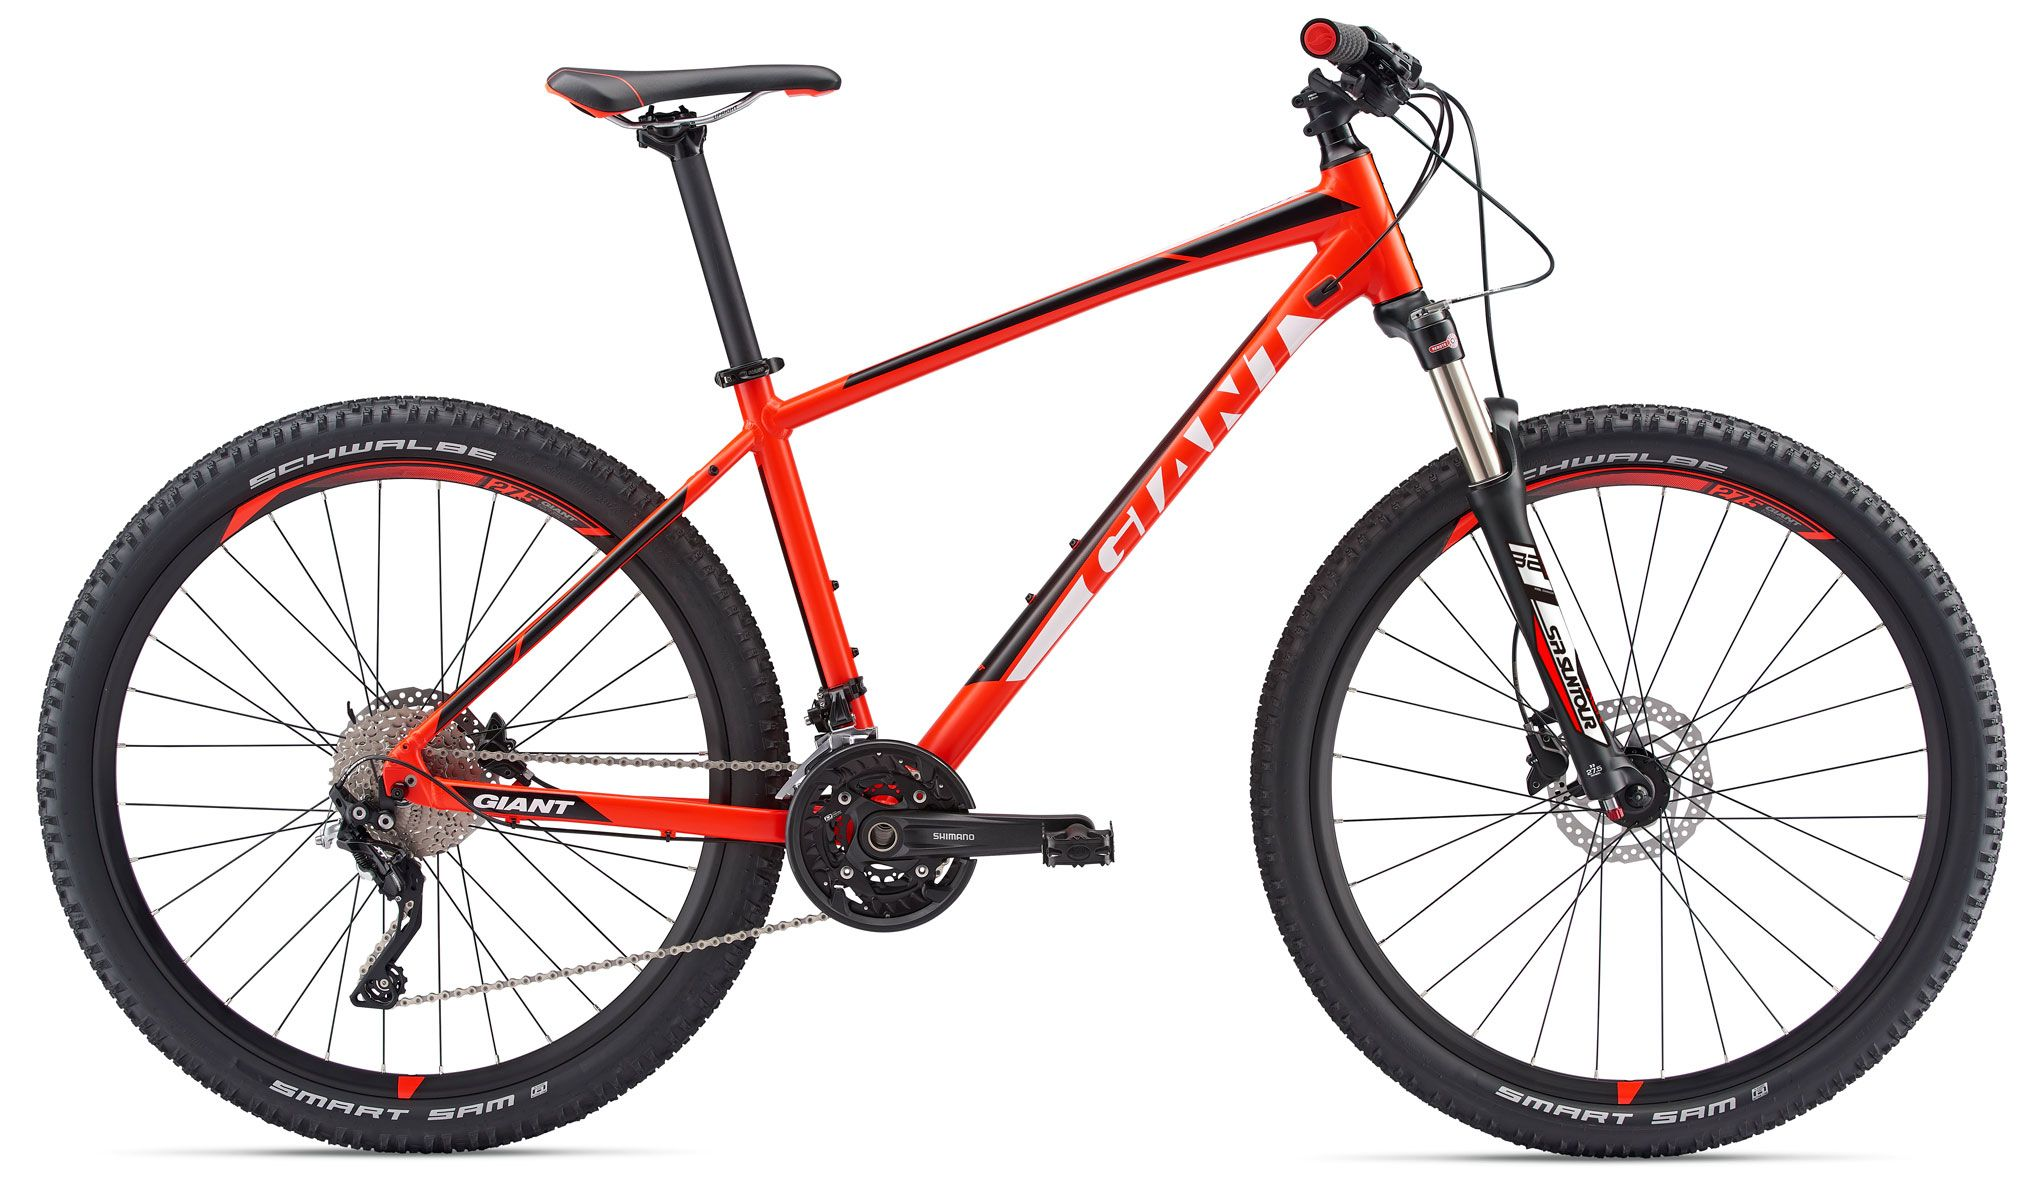 Велосипед Giant Talon 1 GE 2018 велосипед giant talon 29er 2 blk 2014